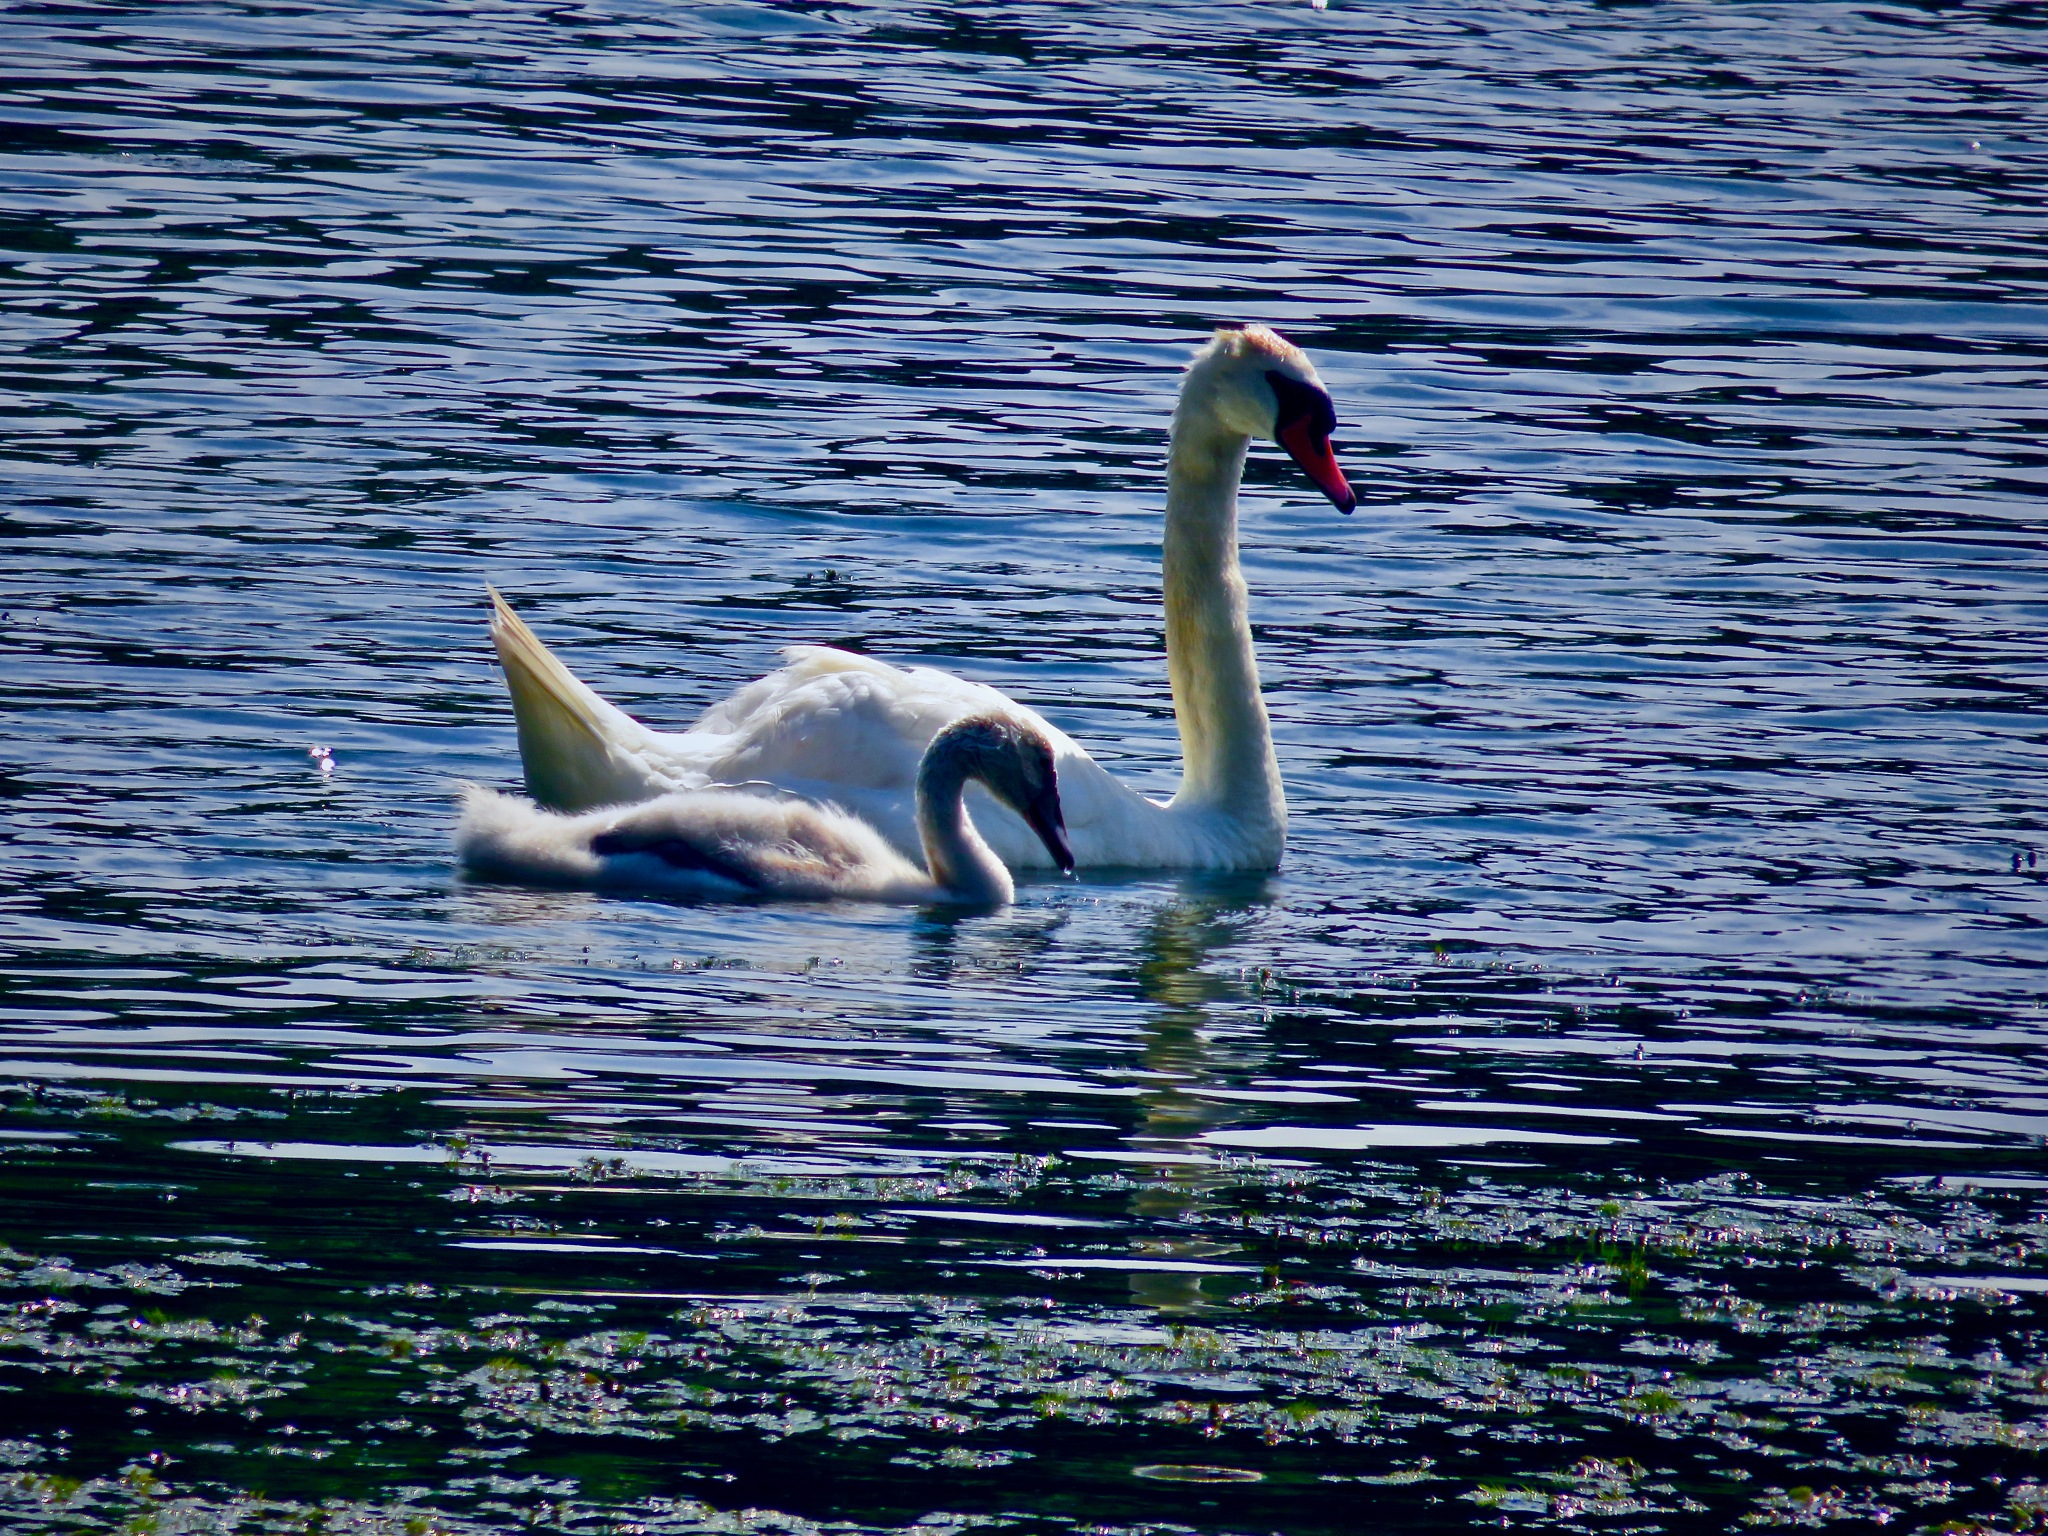 as in one month baby swan becomes a tween .... ; )  by David Devion